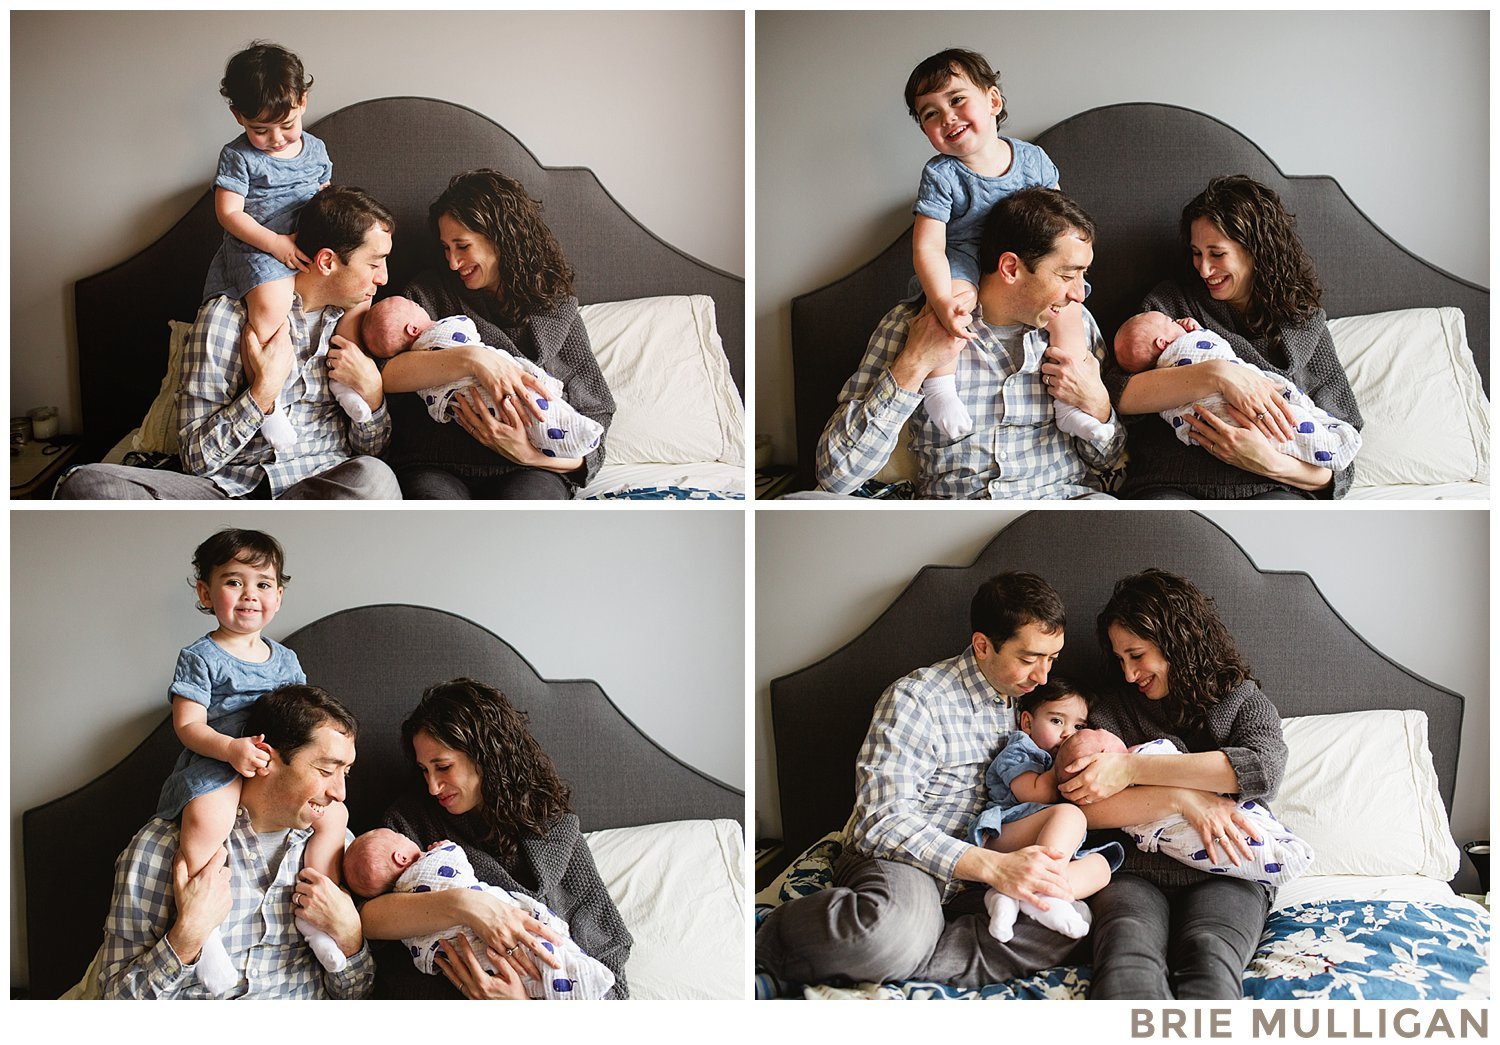 Brie-Mulligan-Family-and-Newborn-Photographer-Montclair-New-Jersey-Northern-NJ-Essex-County-and-NYC_0155.jpg